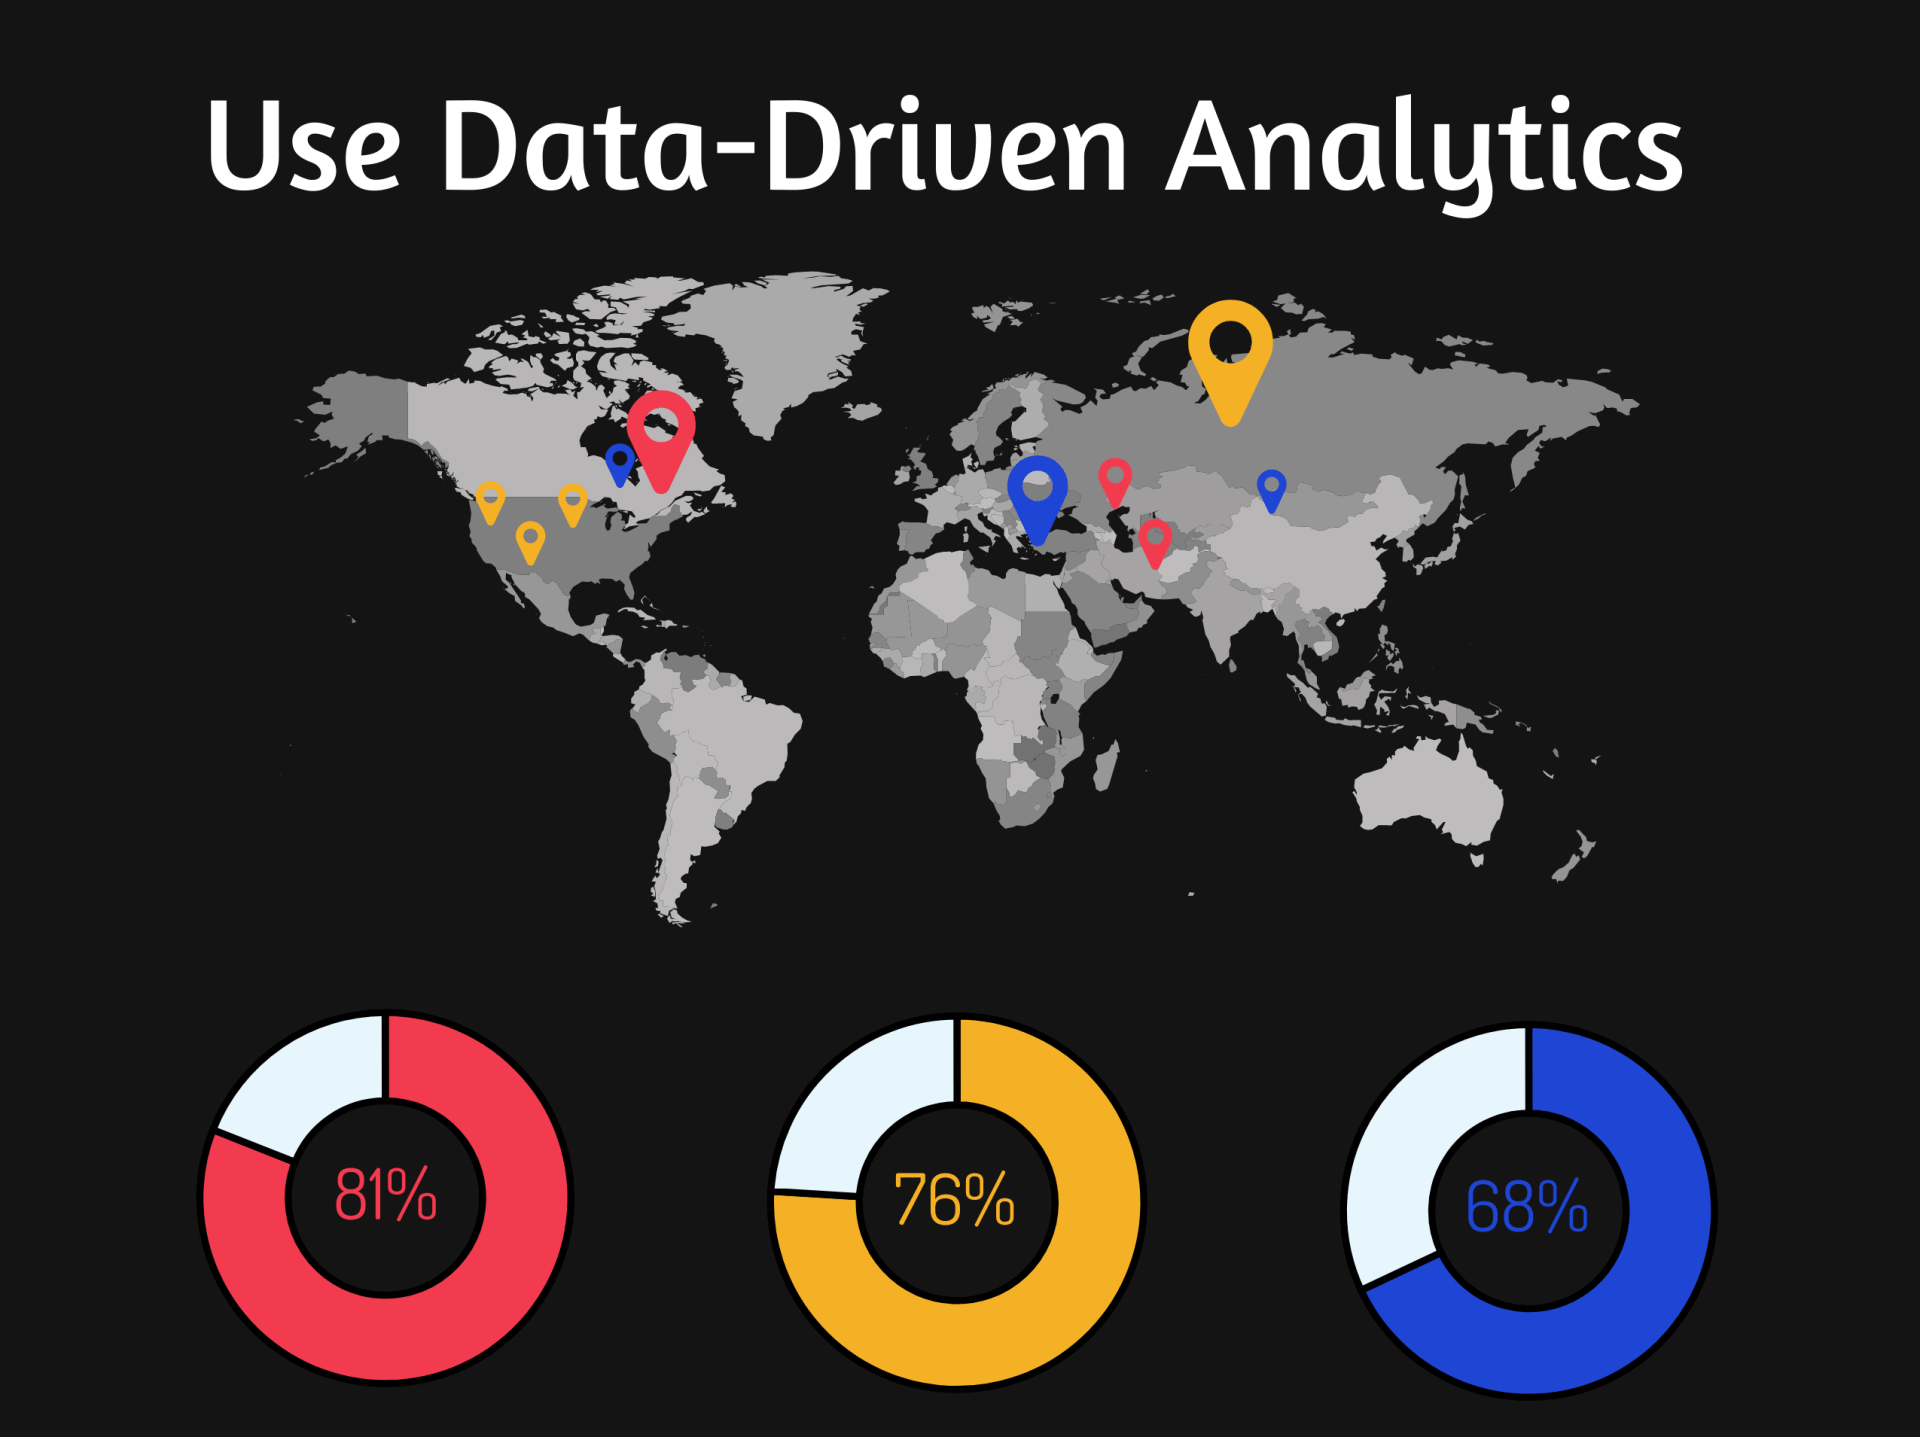 Use Data-Driven Analytics